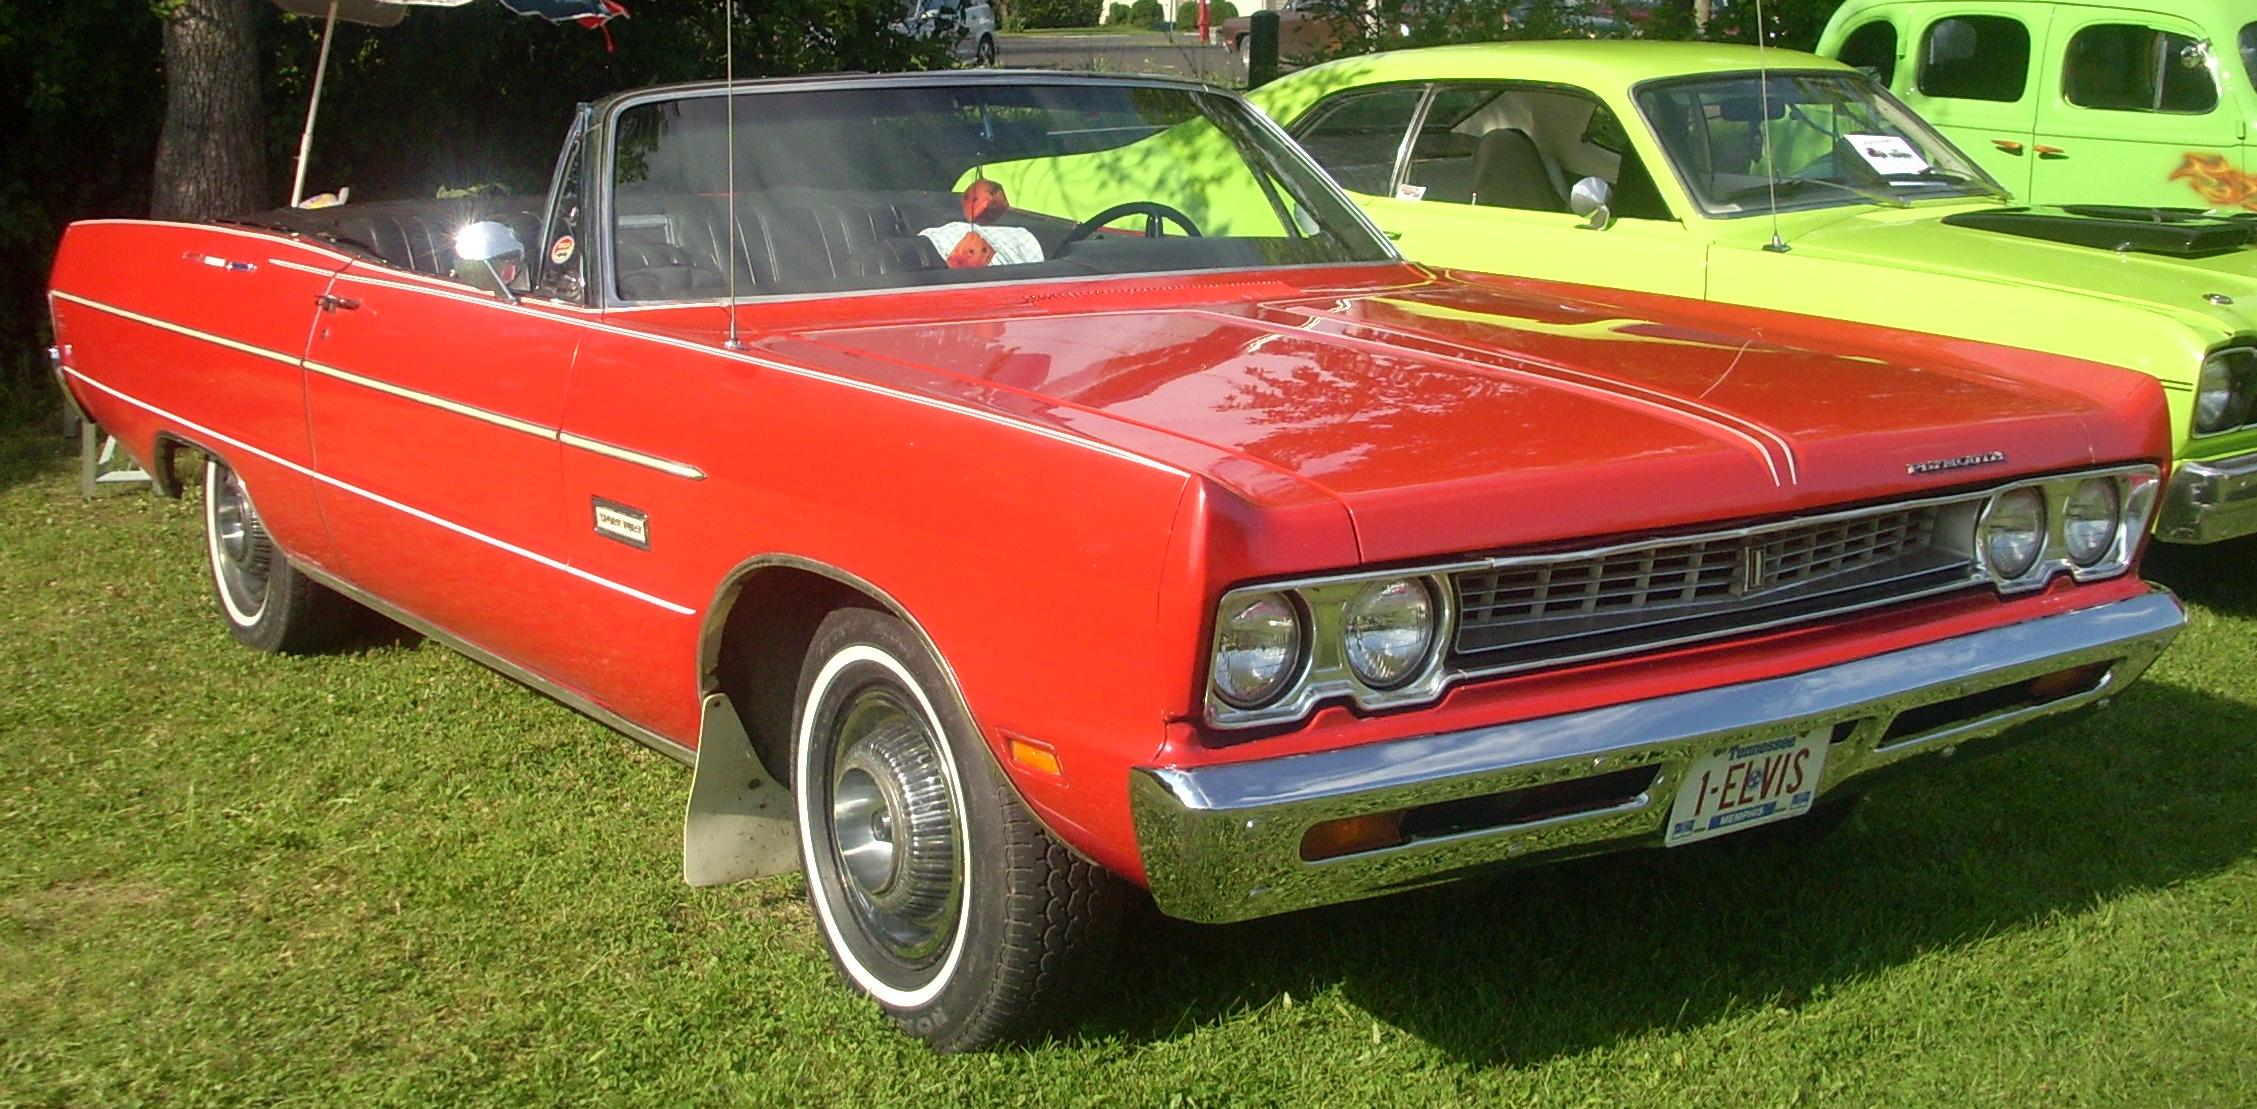 440 best plymouth cars 1 images on pinterest mopar plymouth road runner and plymouth